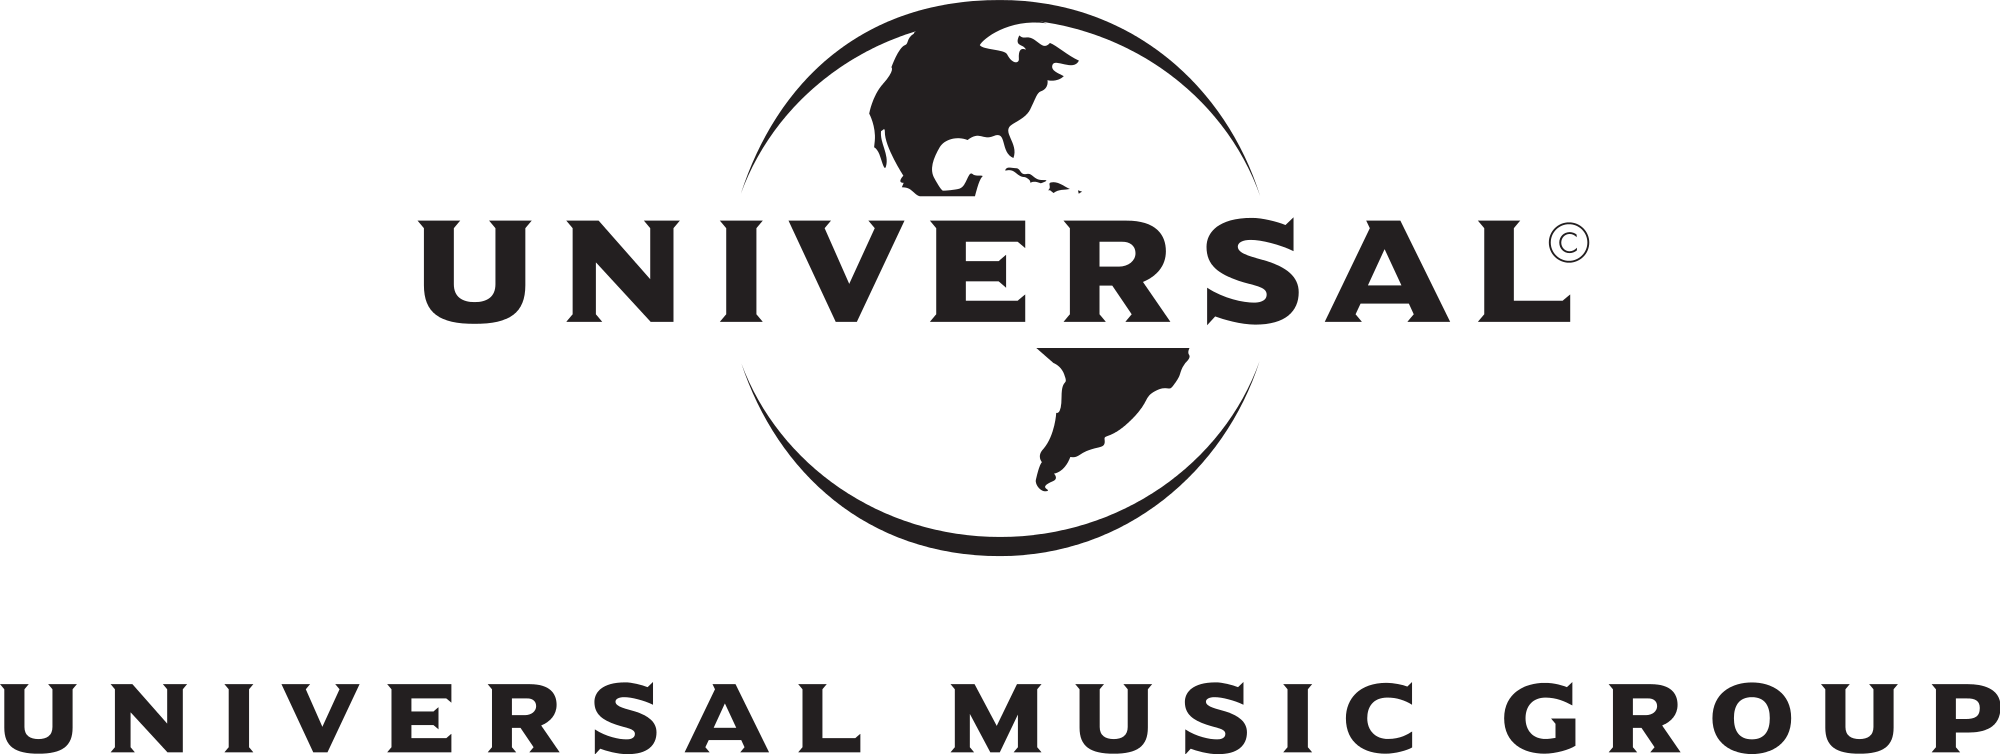 Universal pictures logo png. Image music group big